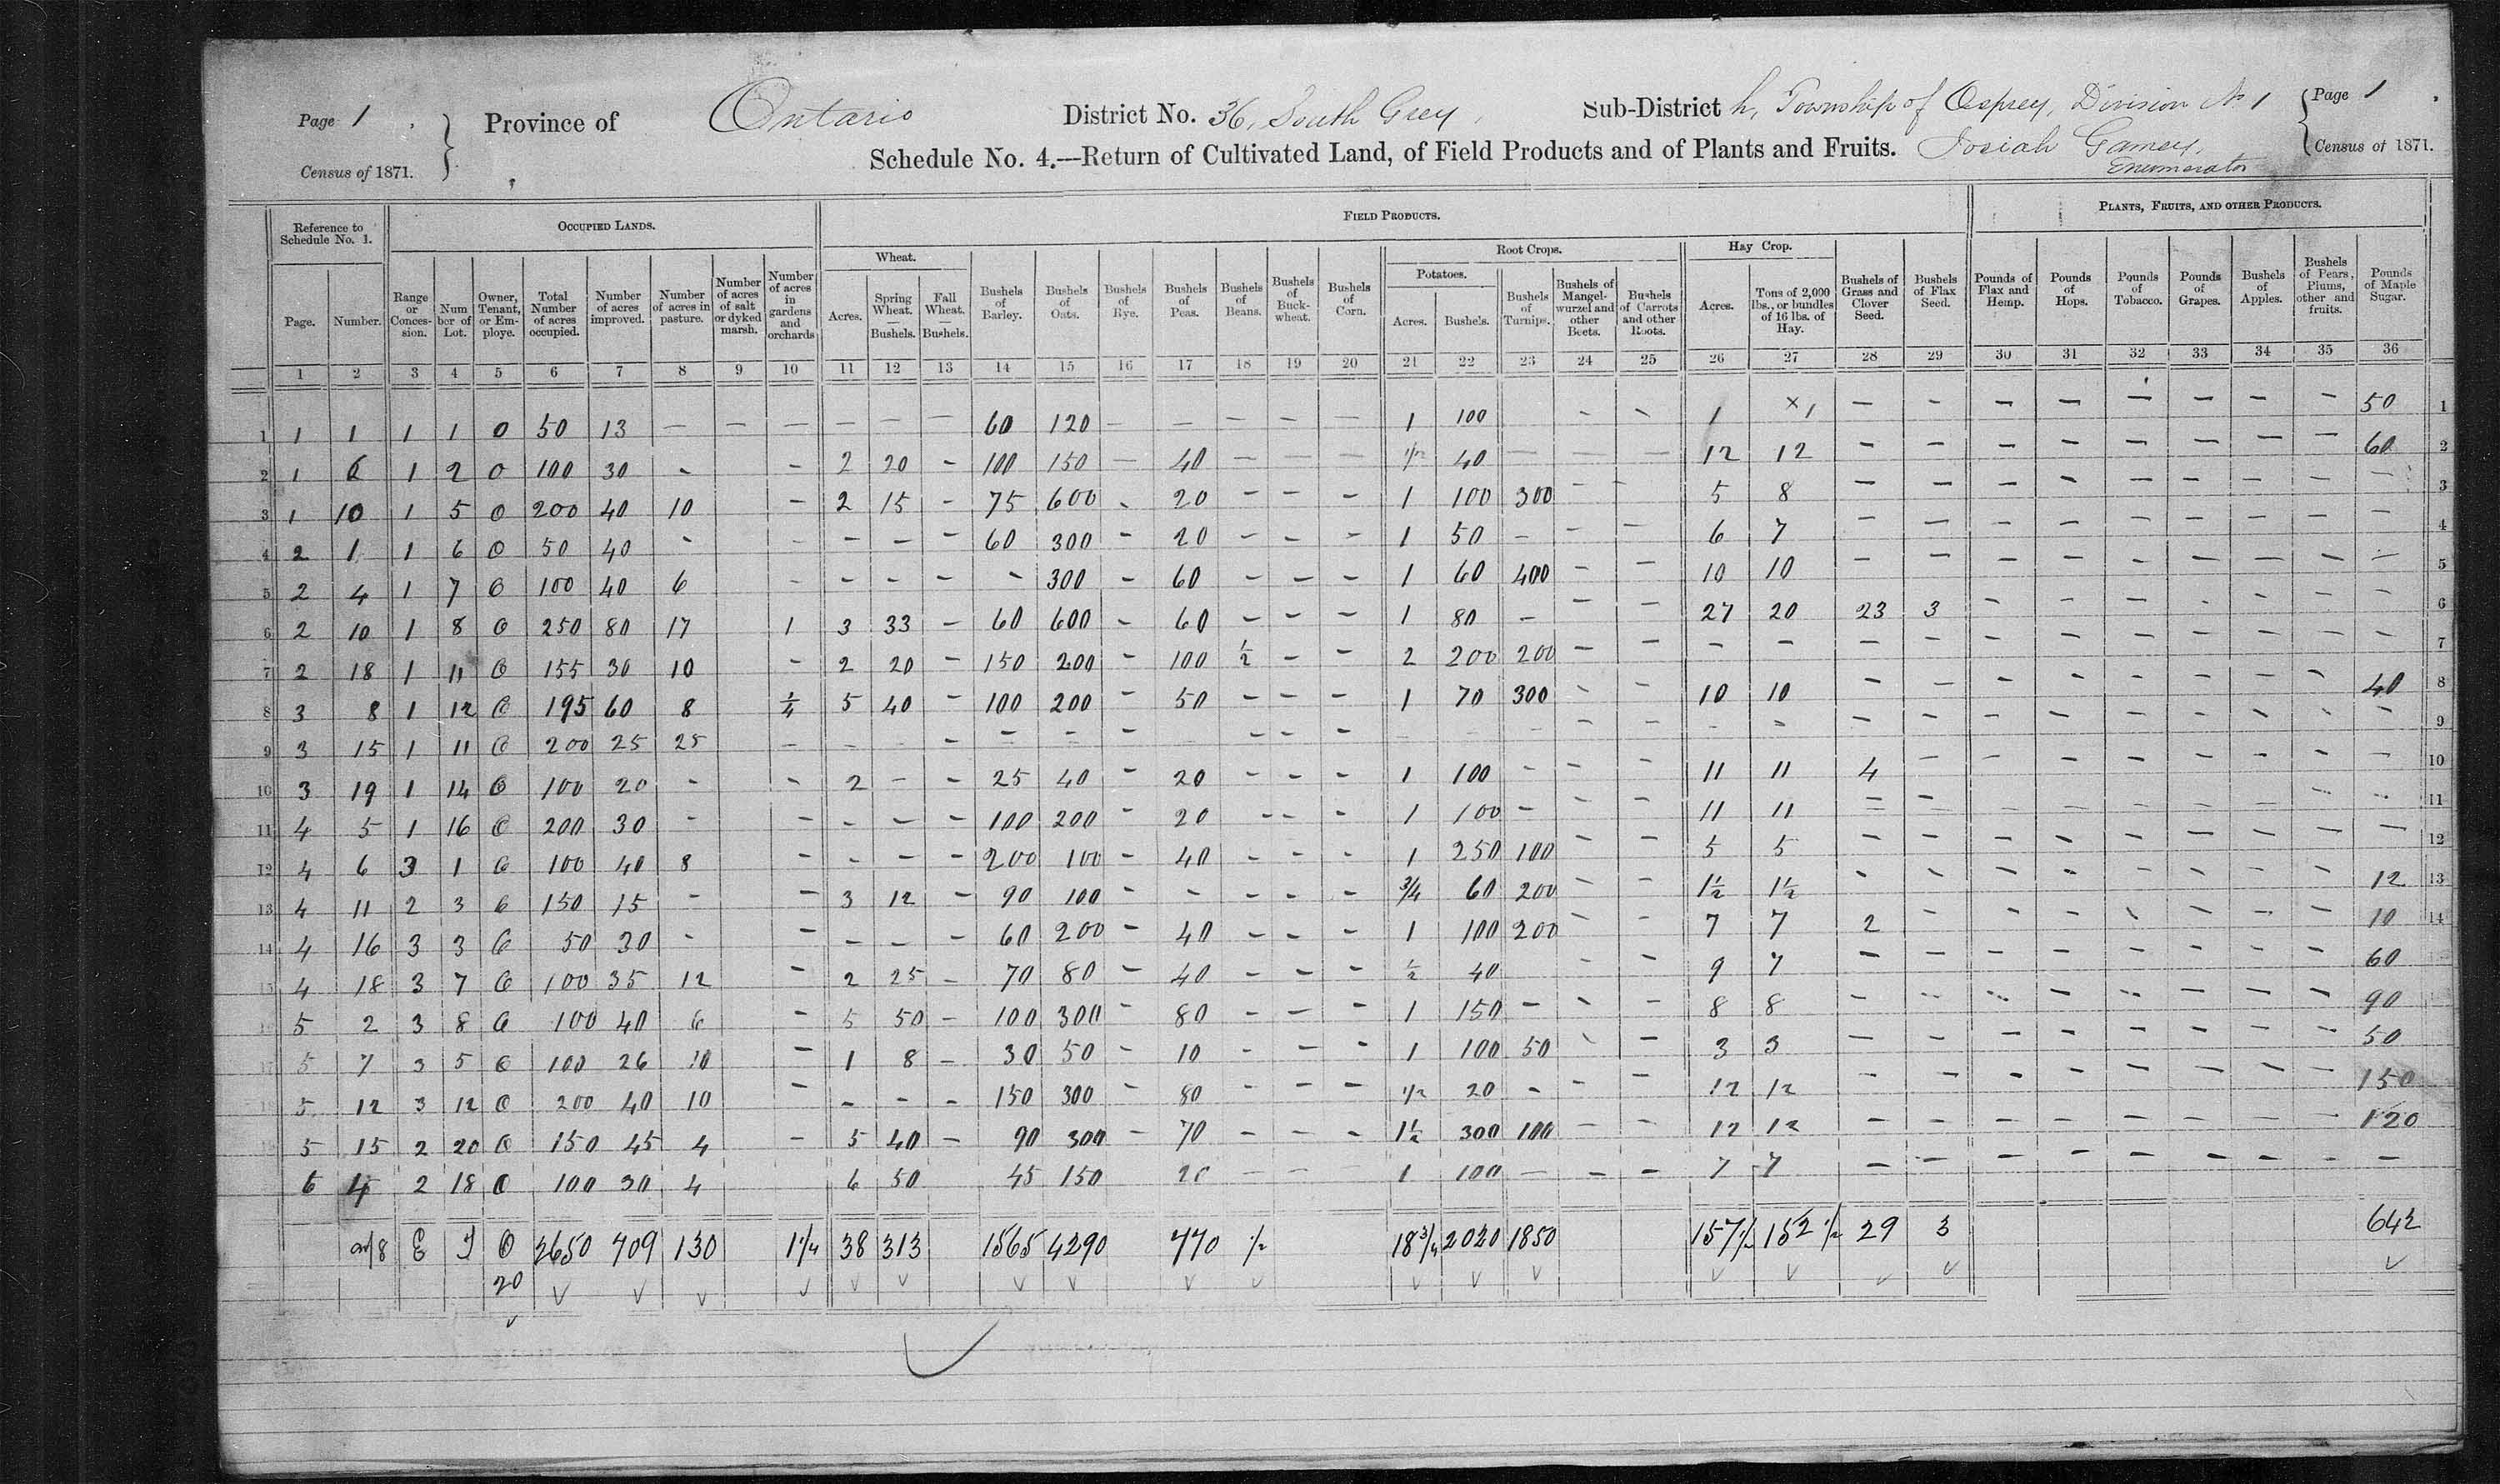 Title: Census of Canada, 1871 - Mikan Number: 142105 - Microform: c-9952